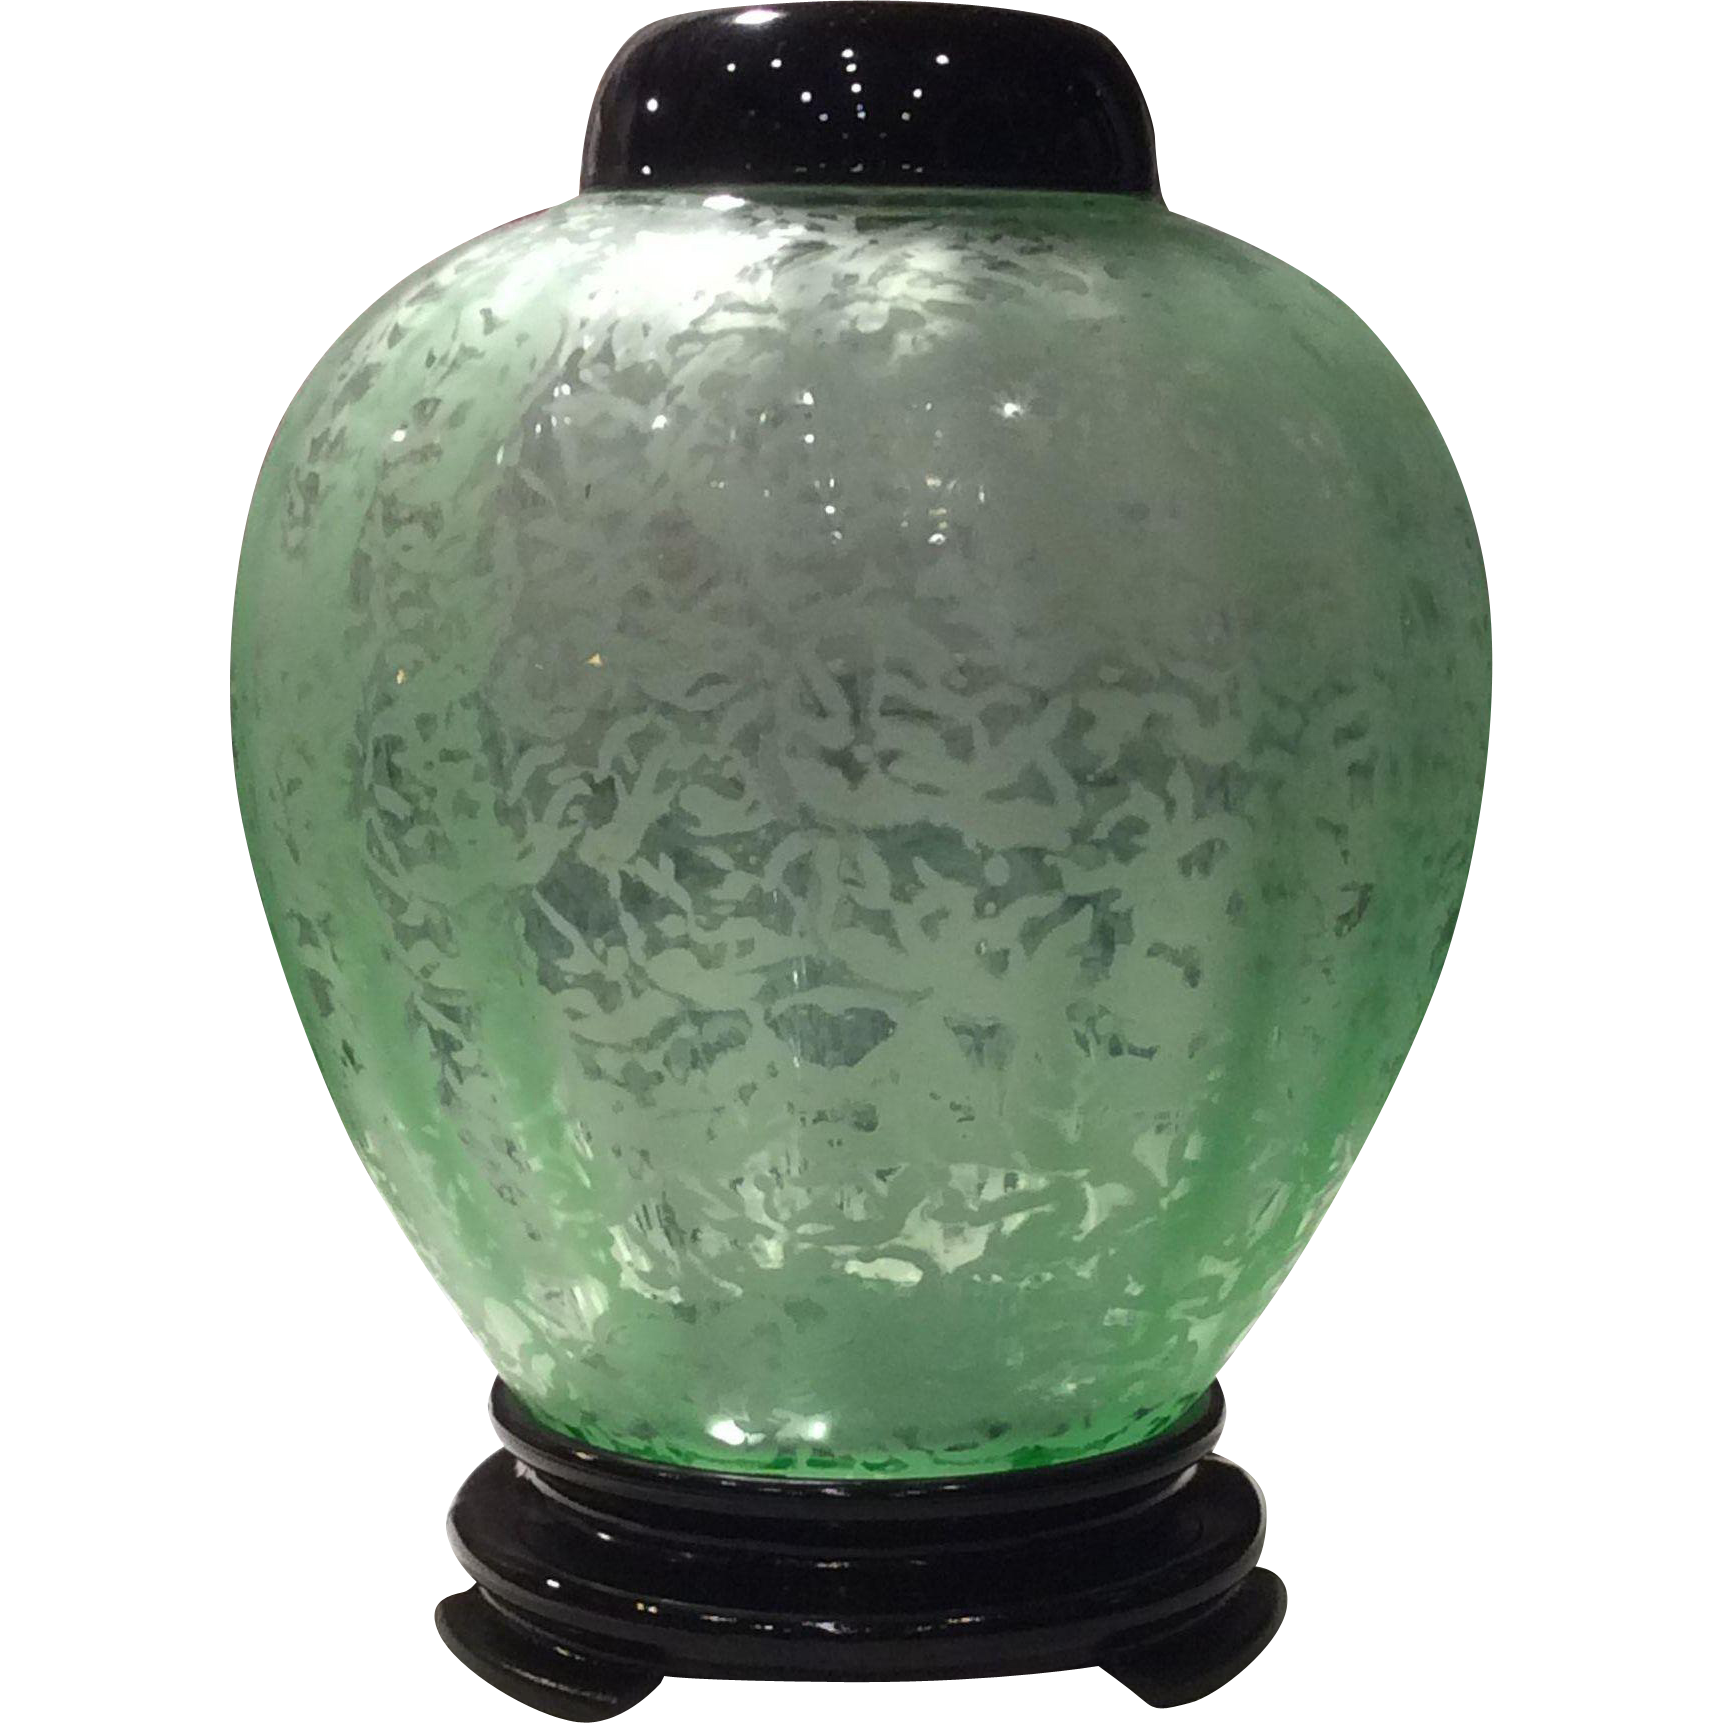 Fenton green ming pattern ginger jar with lid base a glass fenton green ming pattern ginger jar with lid base a glass act ruby lane reviewsmspy